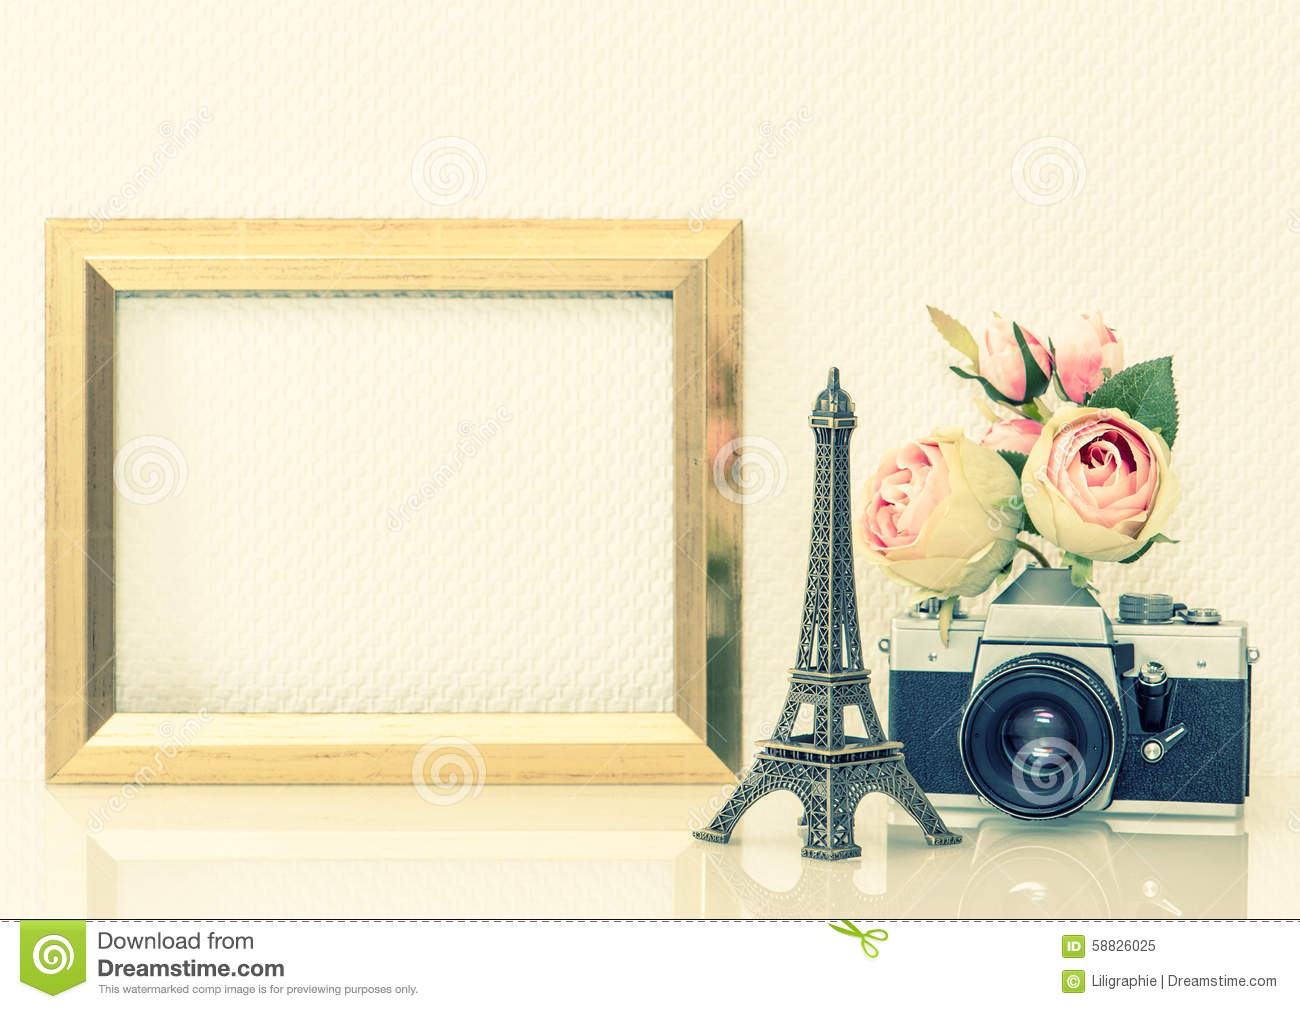 golden picture frame flowers and vintage camera nostalgic deco stock image image of banner. Black Bedroom Furniture Sets. Home Design Ideas